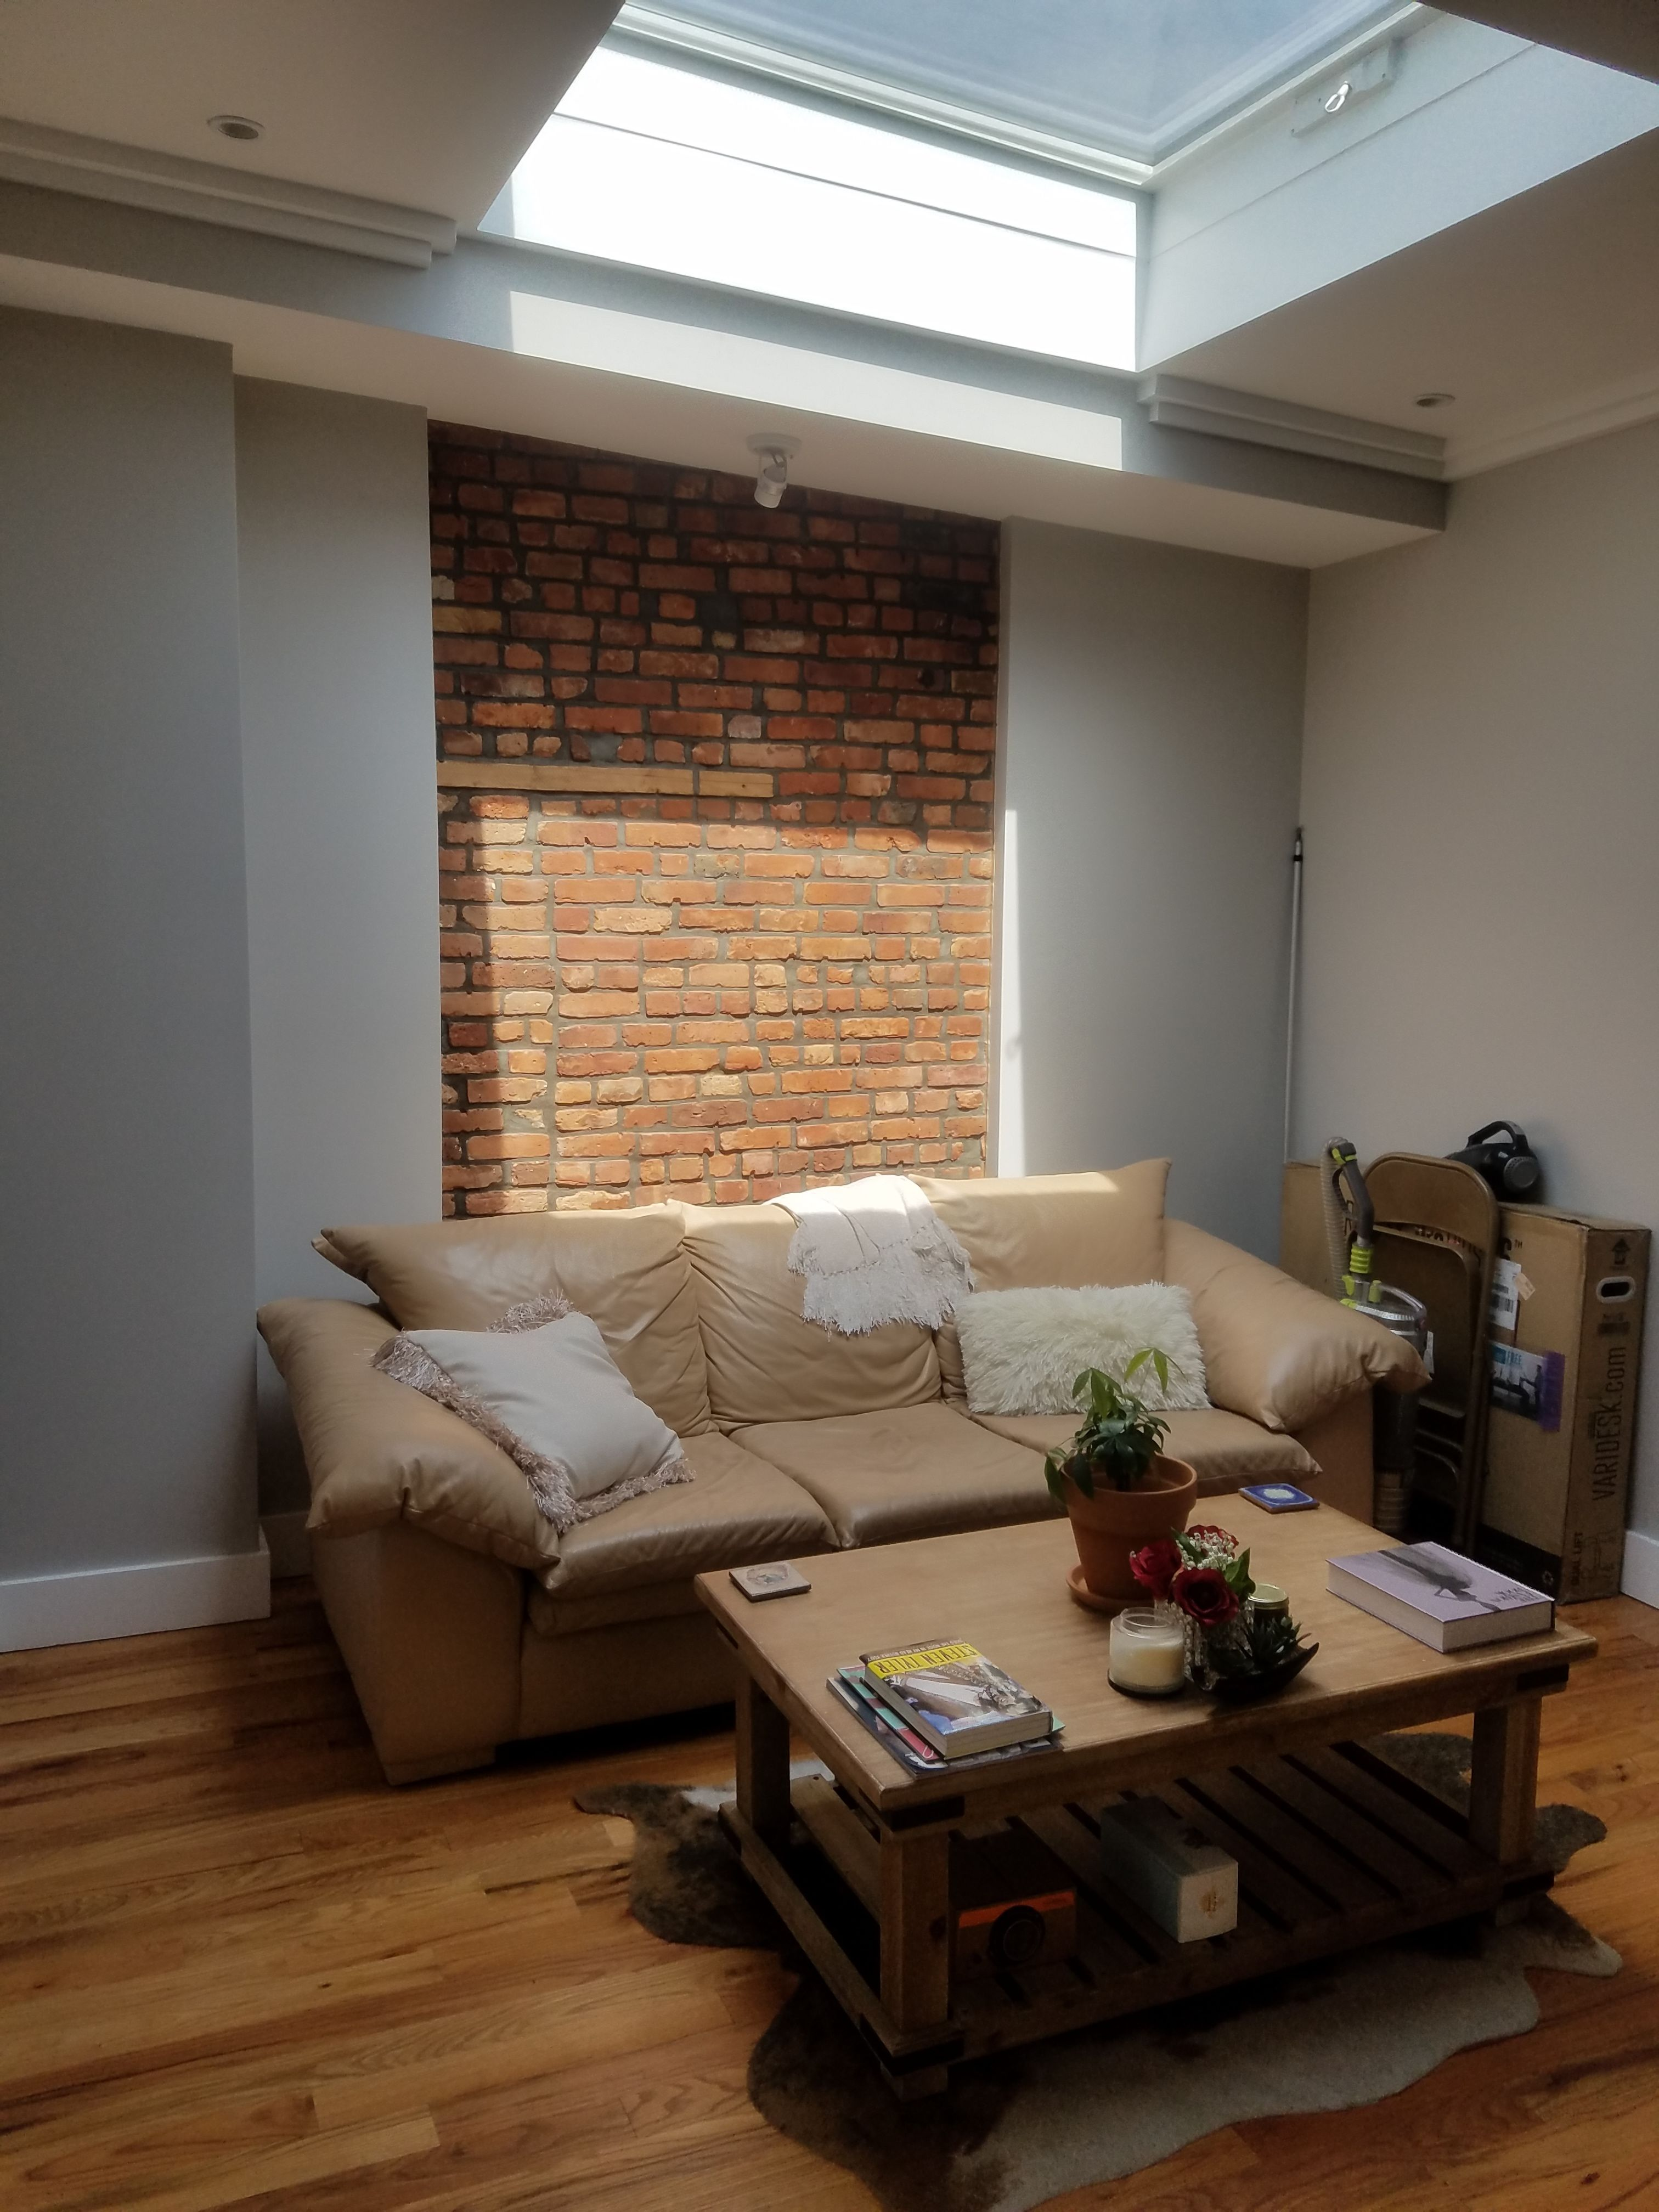 Rooms For Rent August 1st In Crown Heights! Photo 8 - BROWNSTONER-LISTING-d402577d74356a417bcc920c8a408560